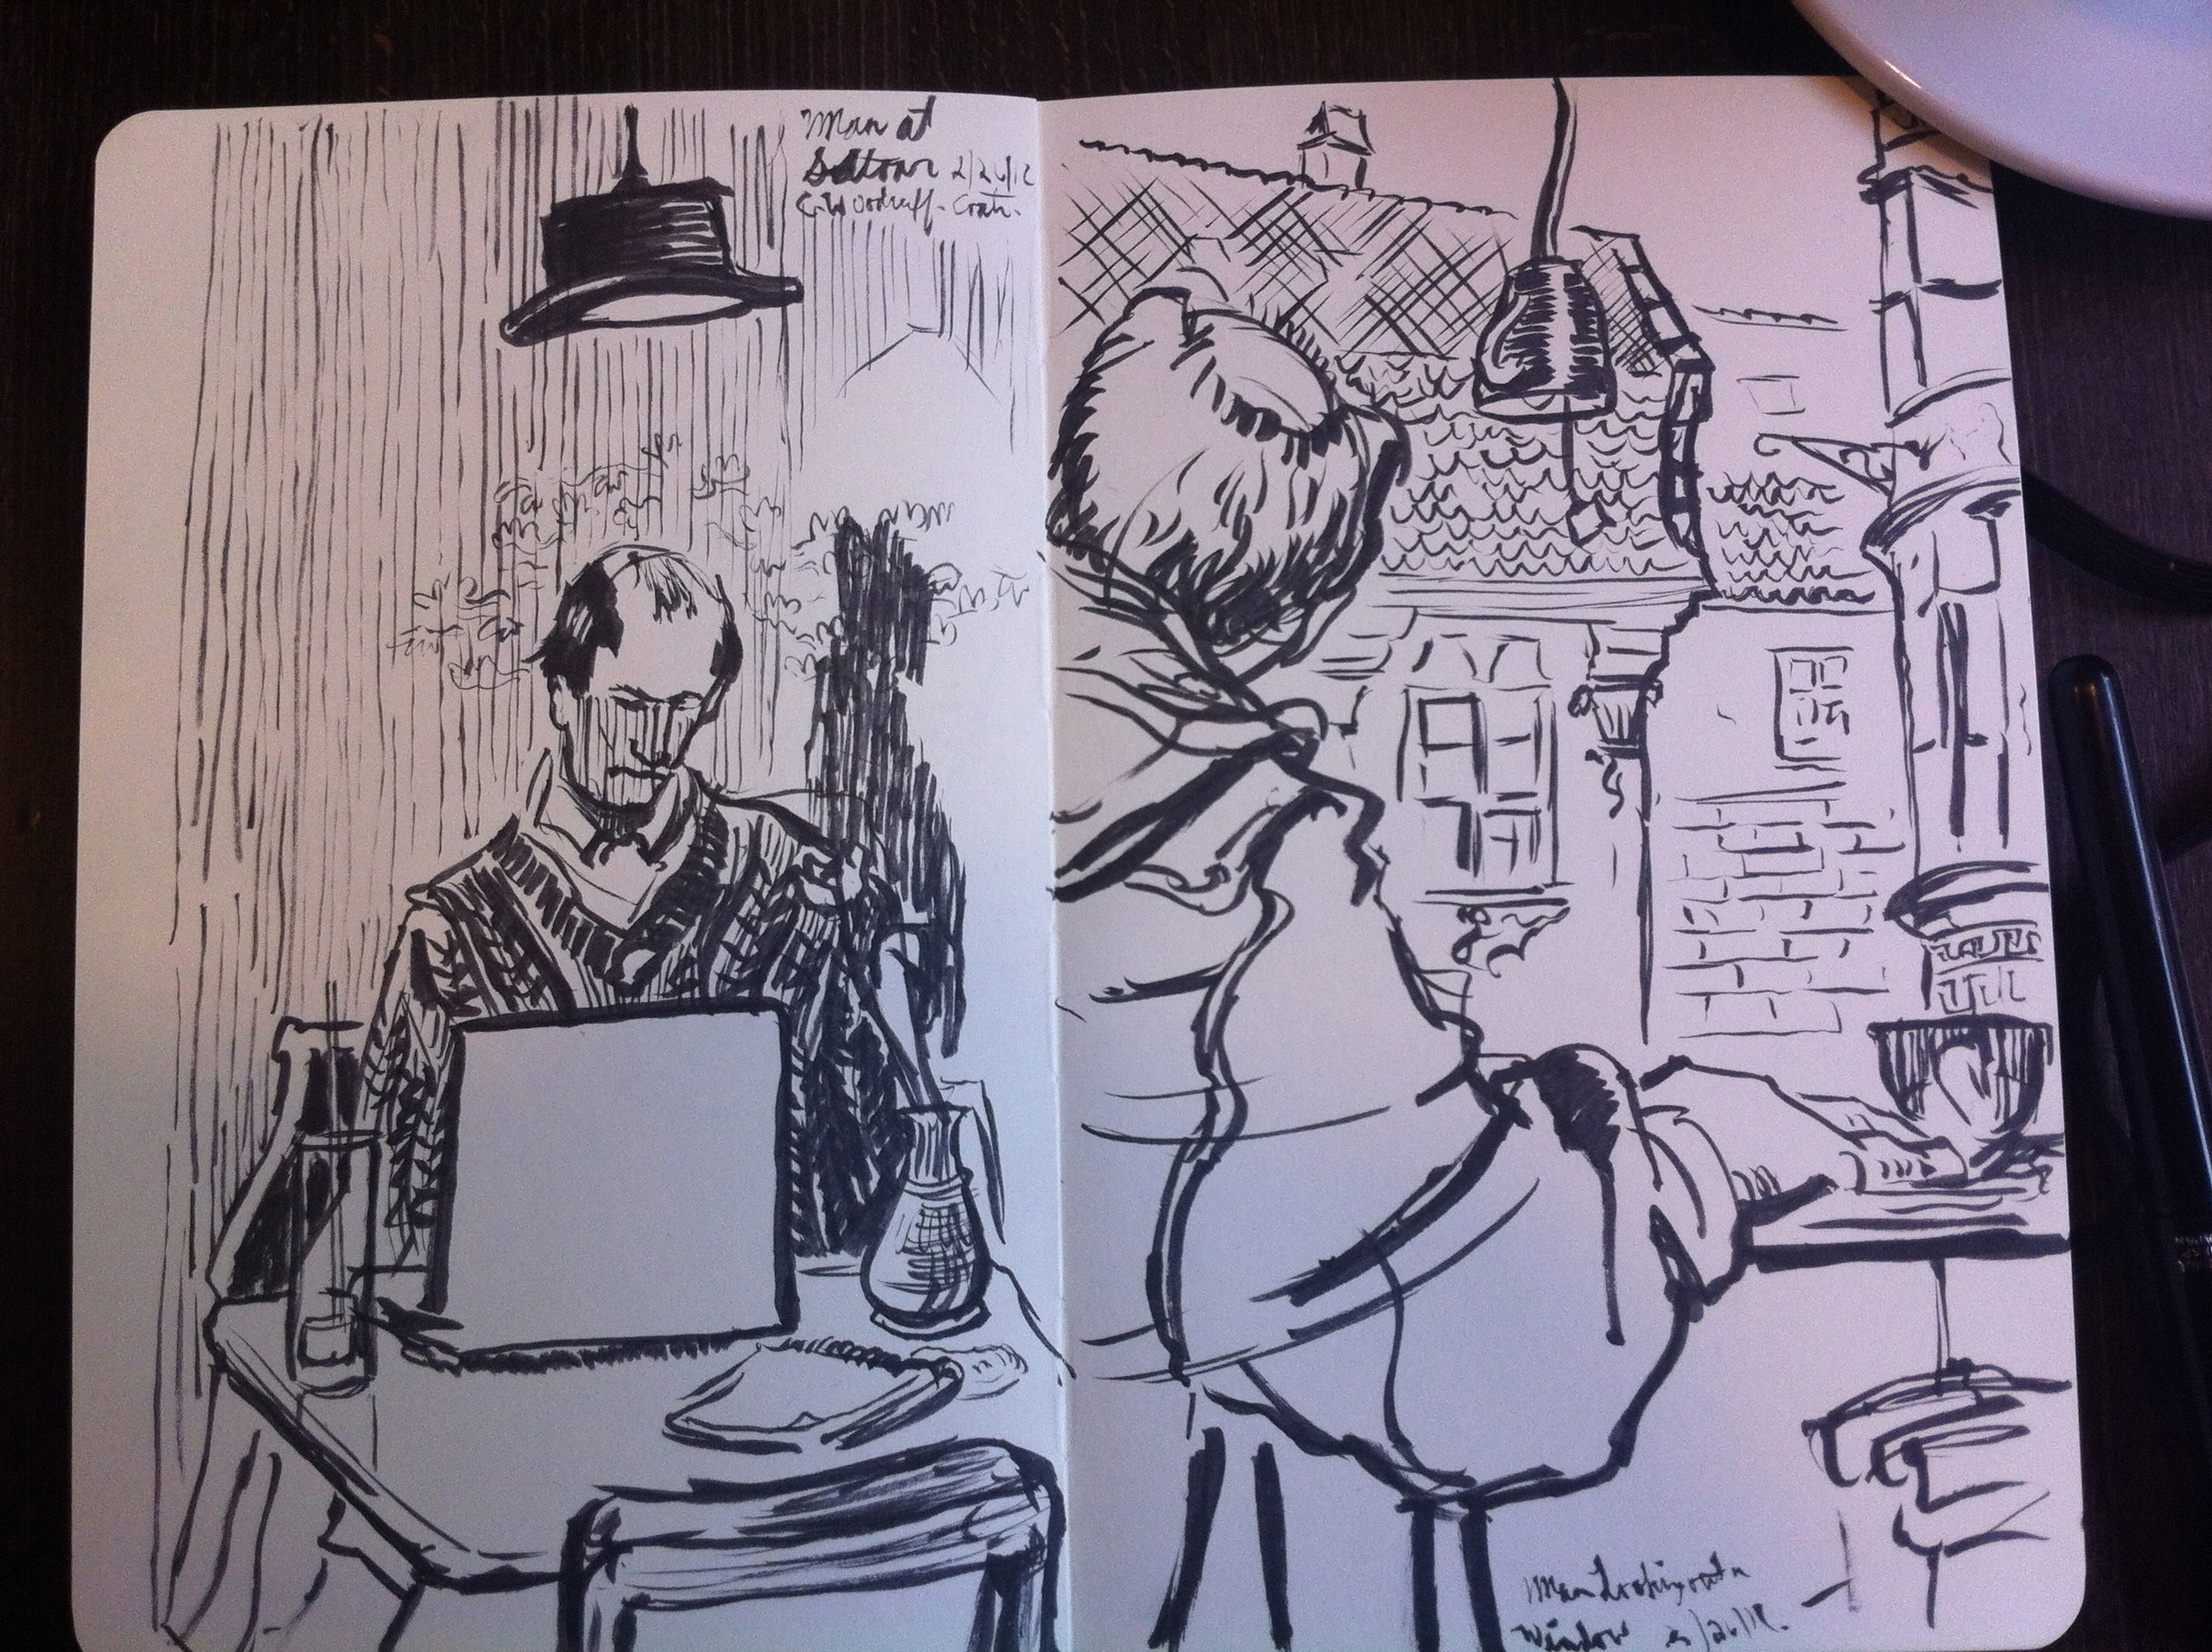 Proof that I still use traditional Sketchbooks